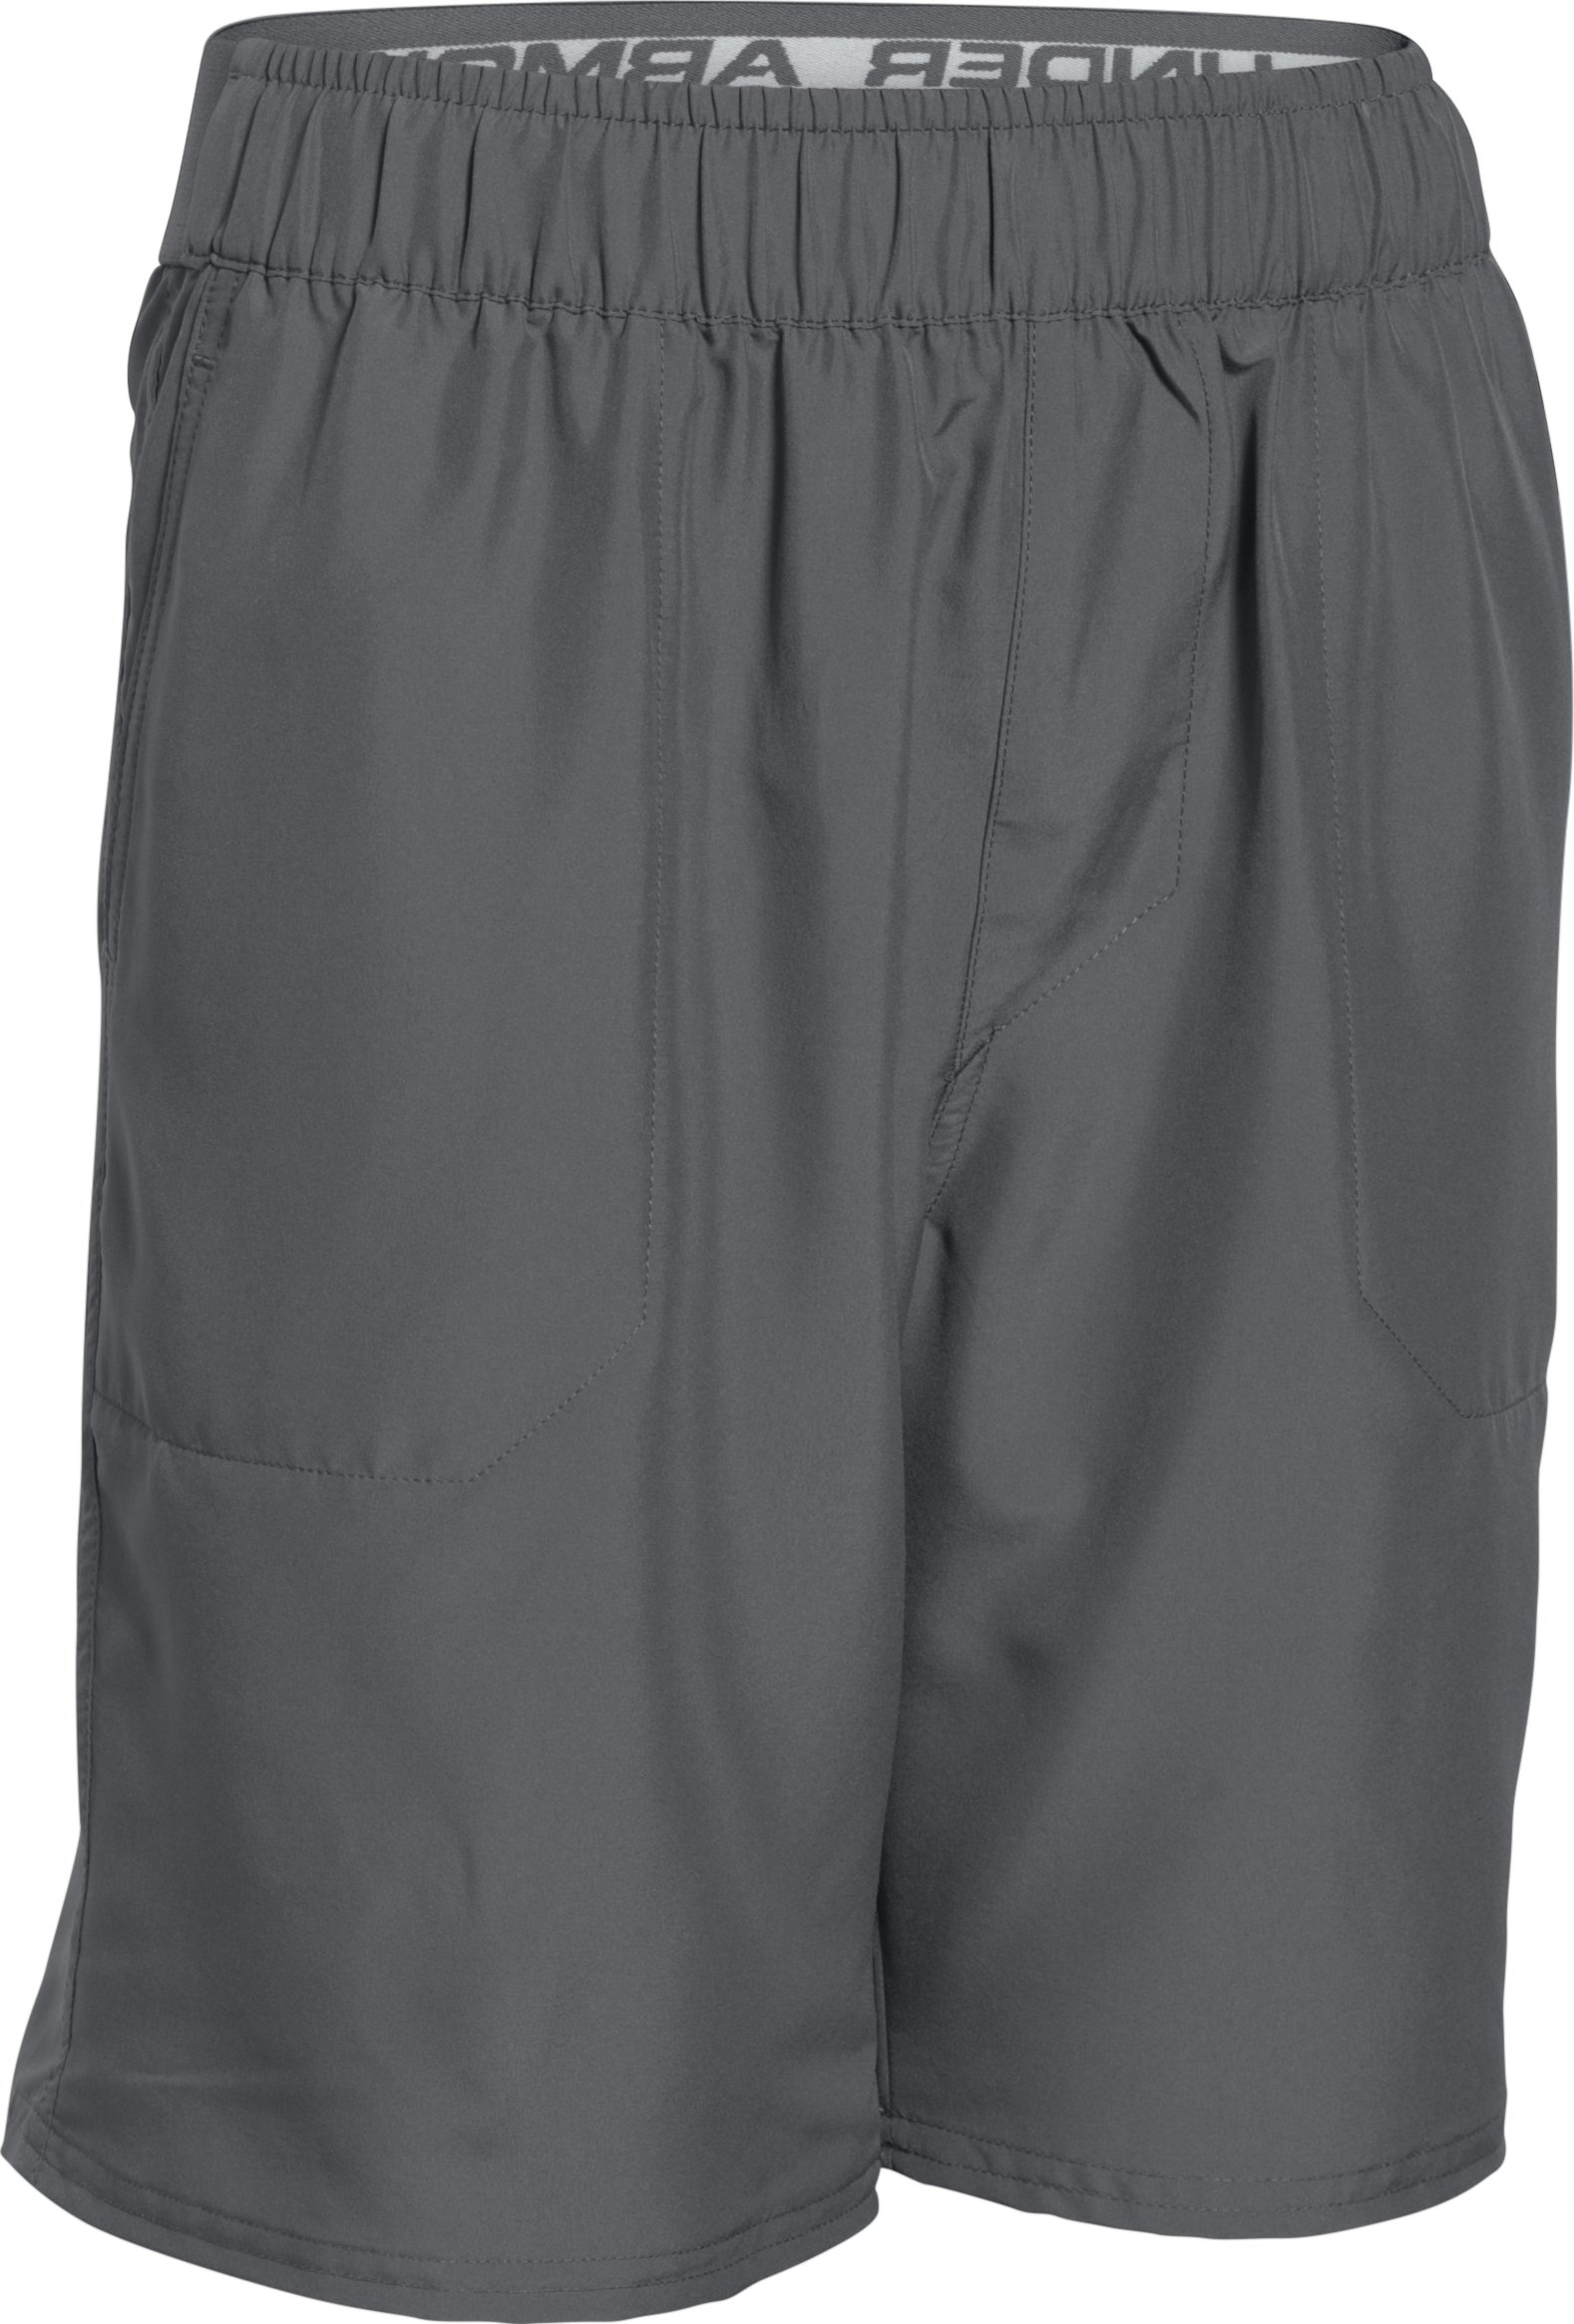 Boys' UA Coastal Amphibious Boardshorts , Graphite, zoomed image